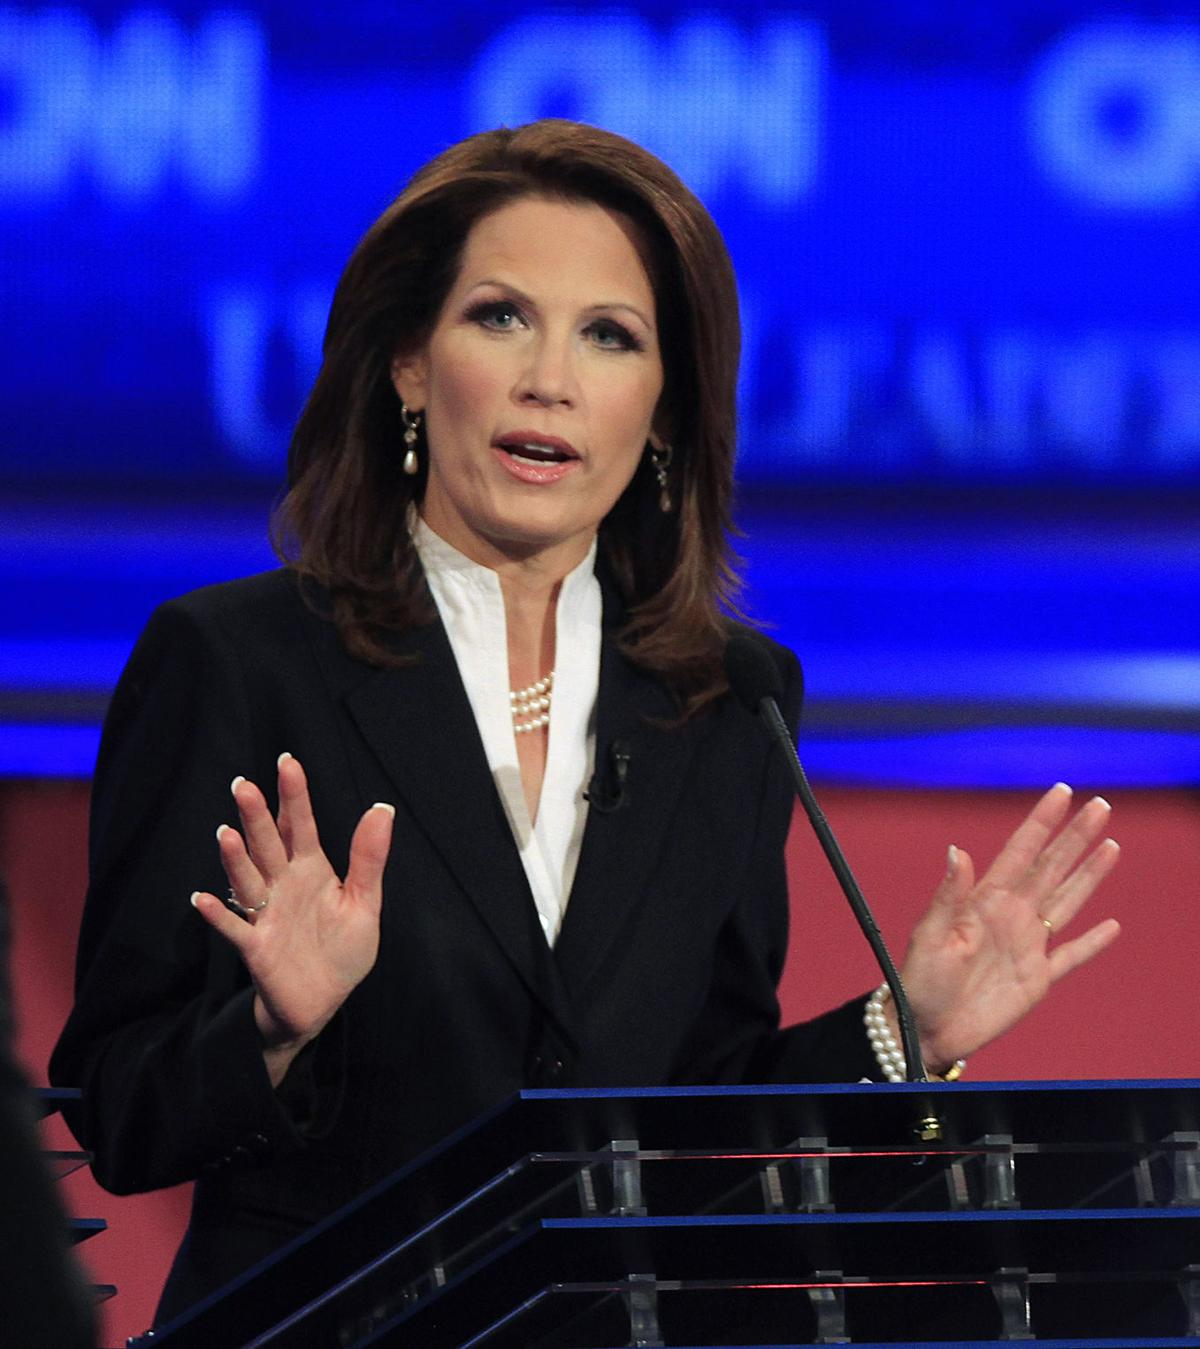 Republicans line up to rip Bachmann